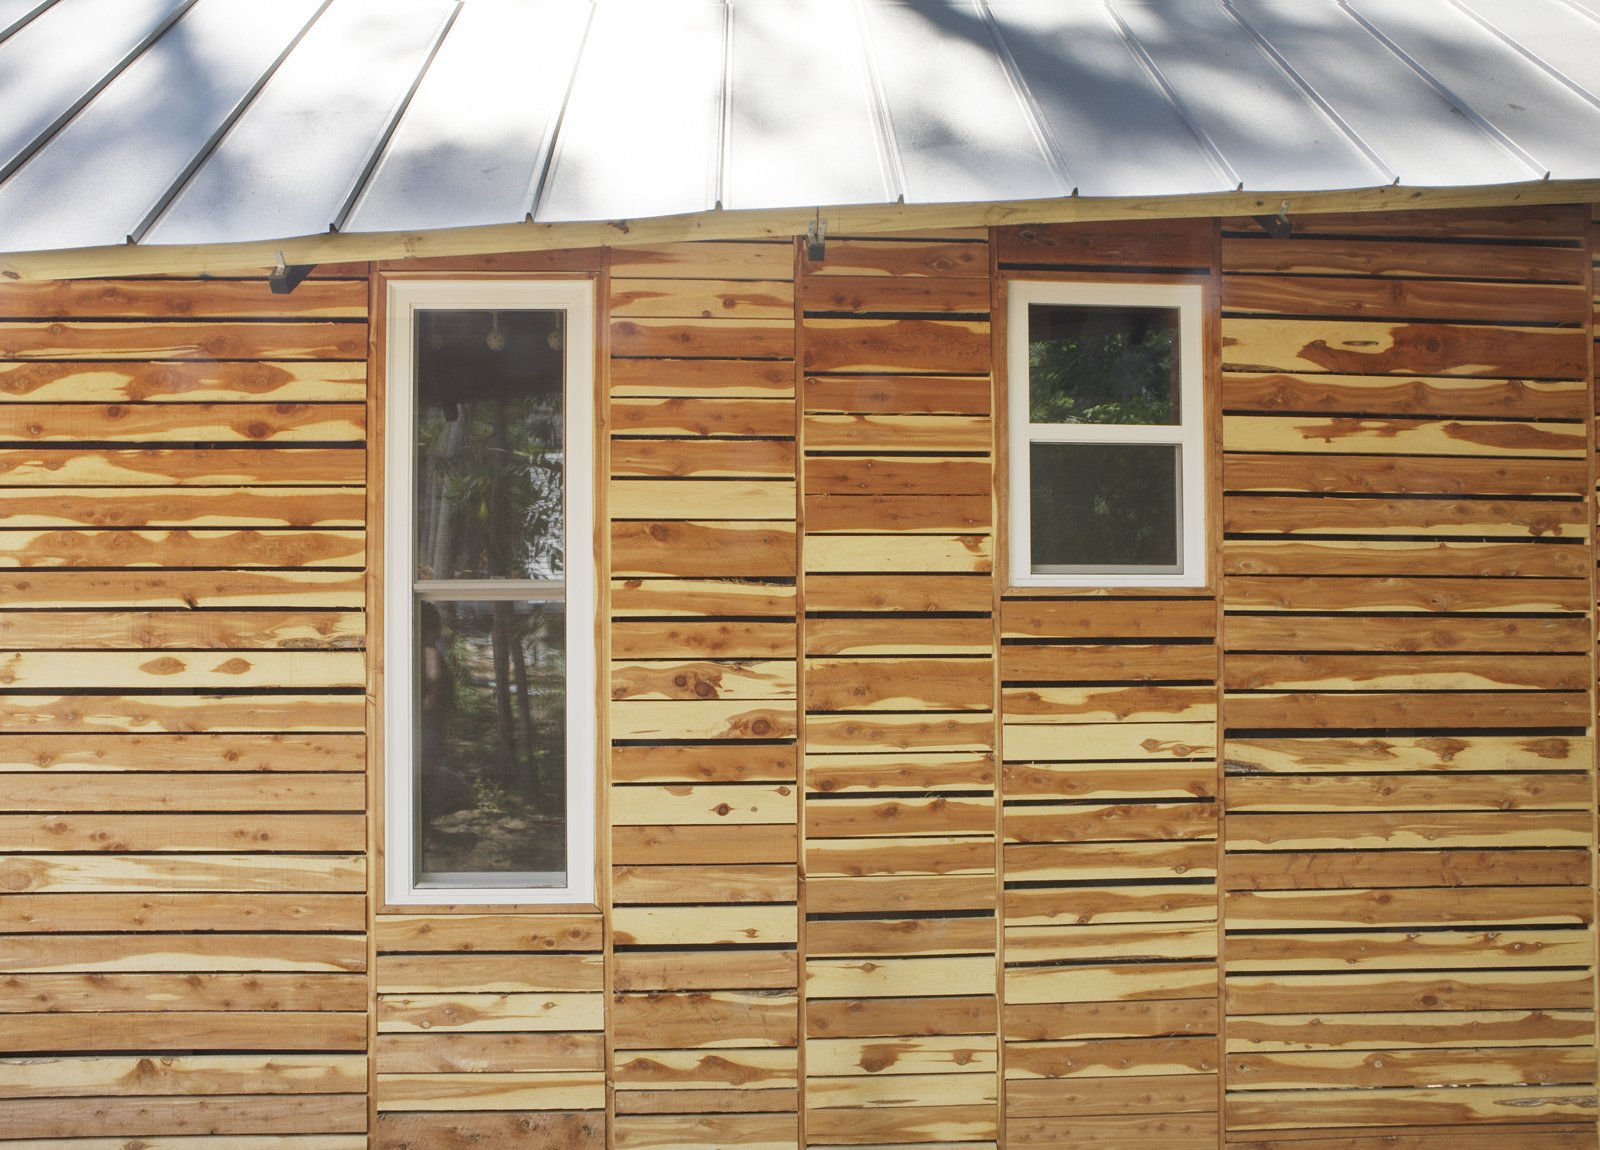 """The students also attempted to appease residents by making their home """"of the area."""" They based the design on vernacular shotgun houses and bought the cedar siding as off-cuts from a local lumberyard, which totaled $120.  Photo by   Ty Cole  Photo 4 of 8 in By the Book"""